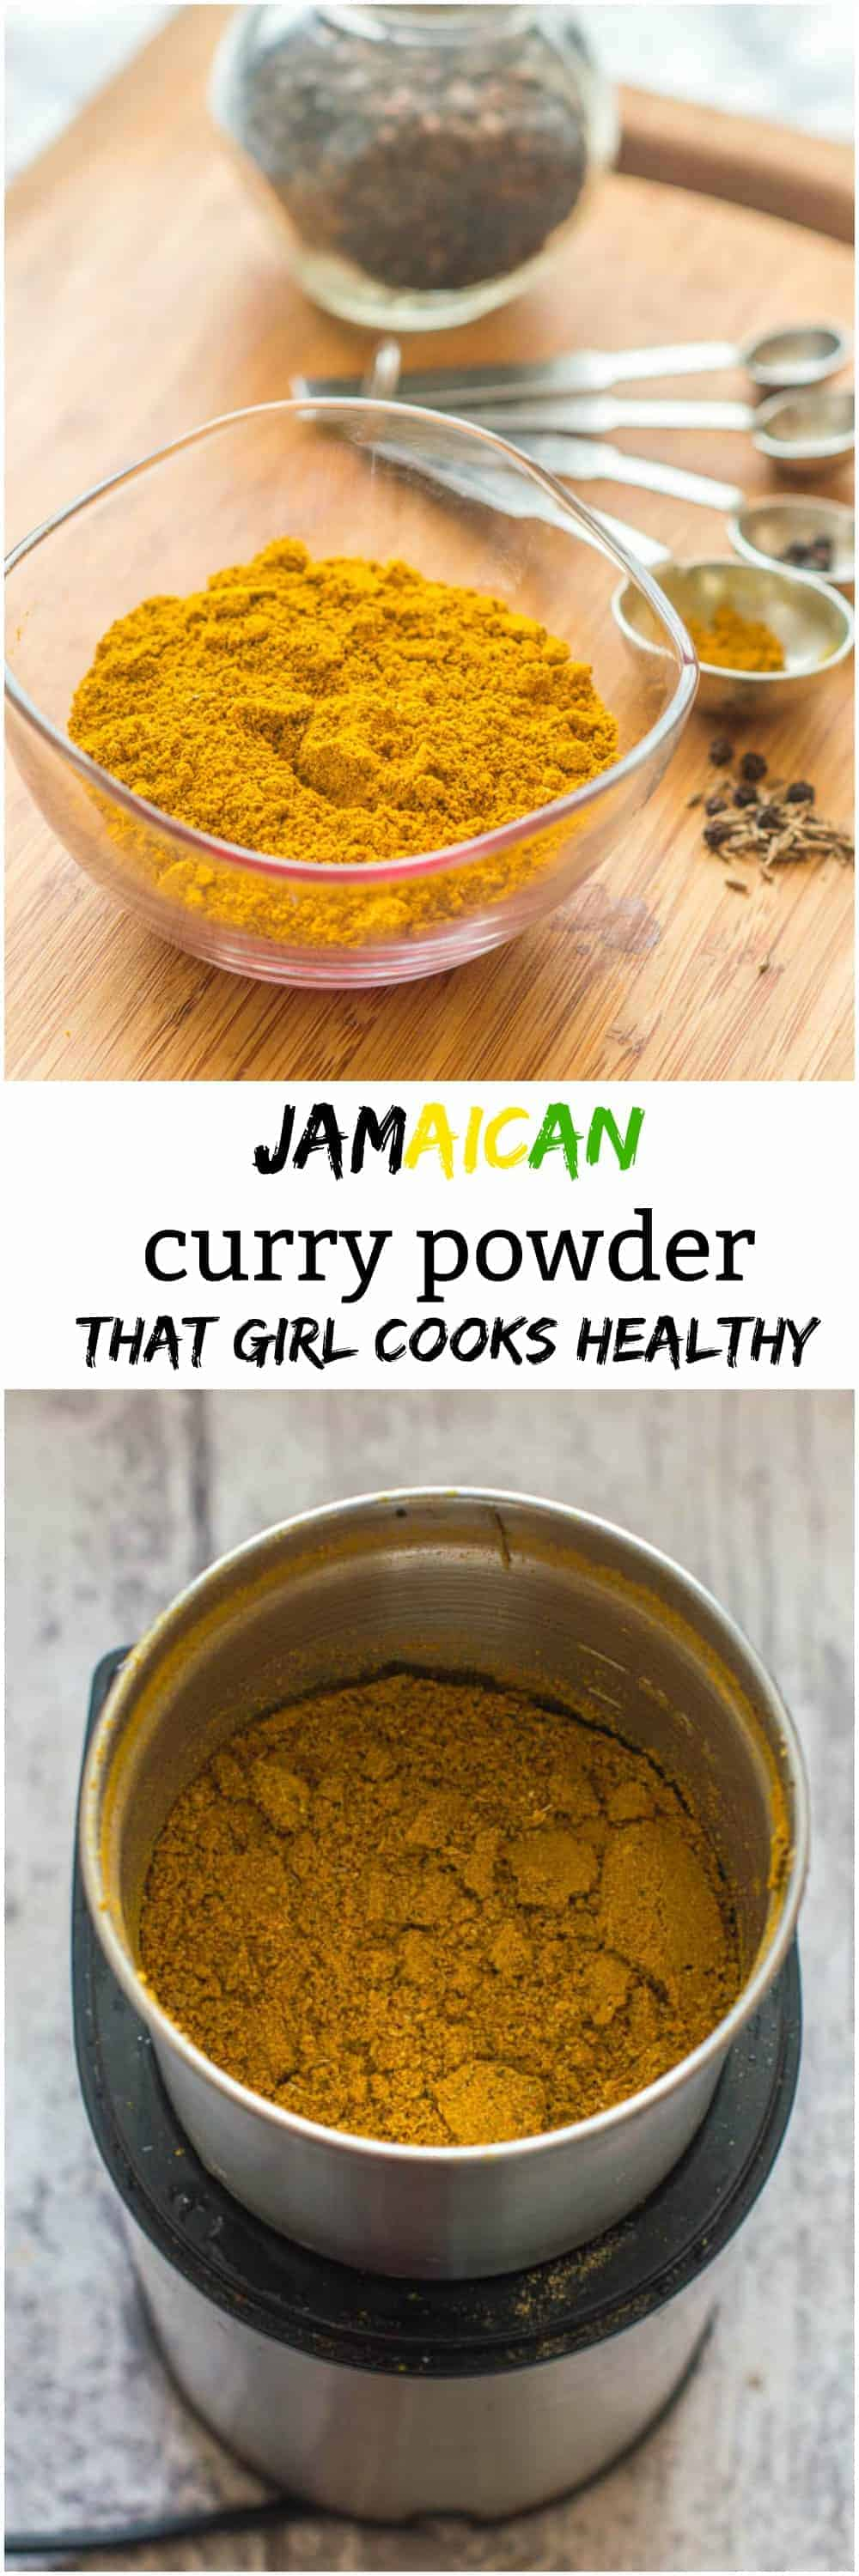 Jamaican Curry Powder That Girl Cooks Healthy